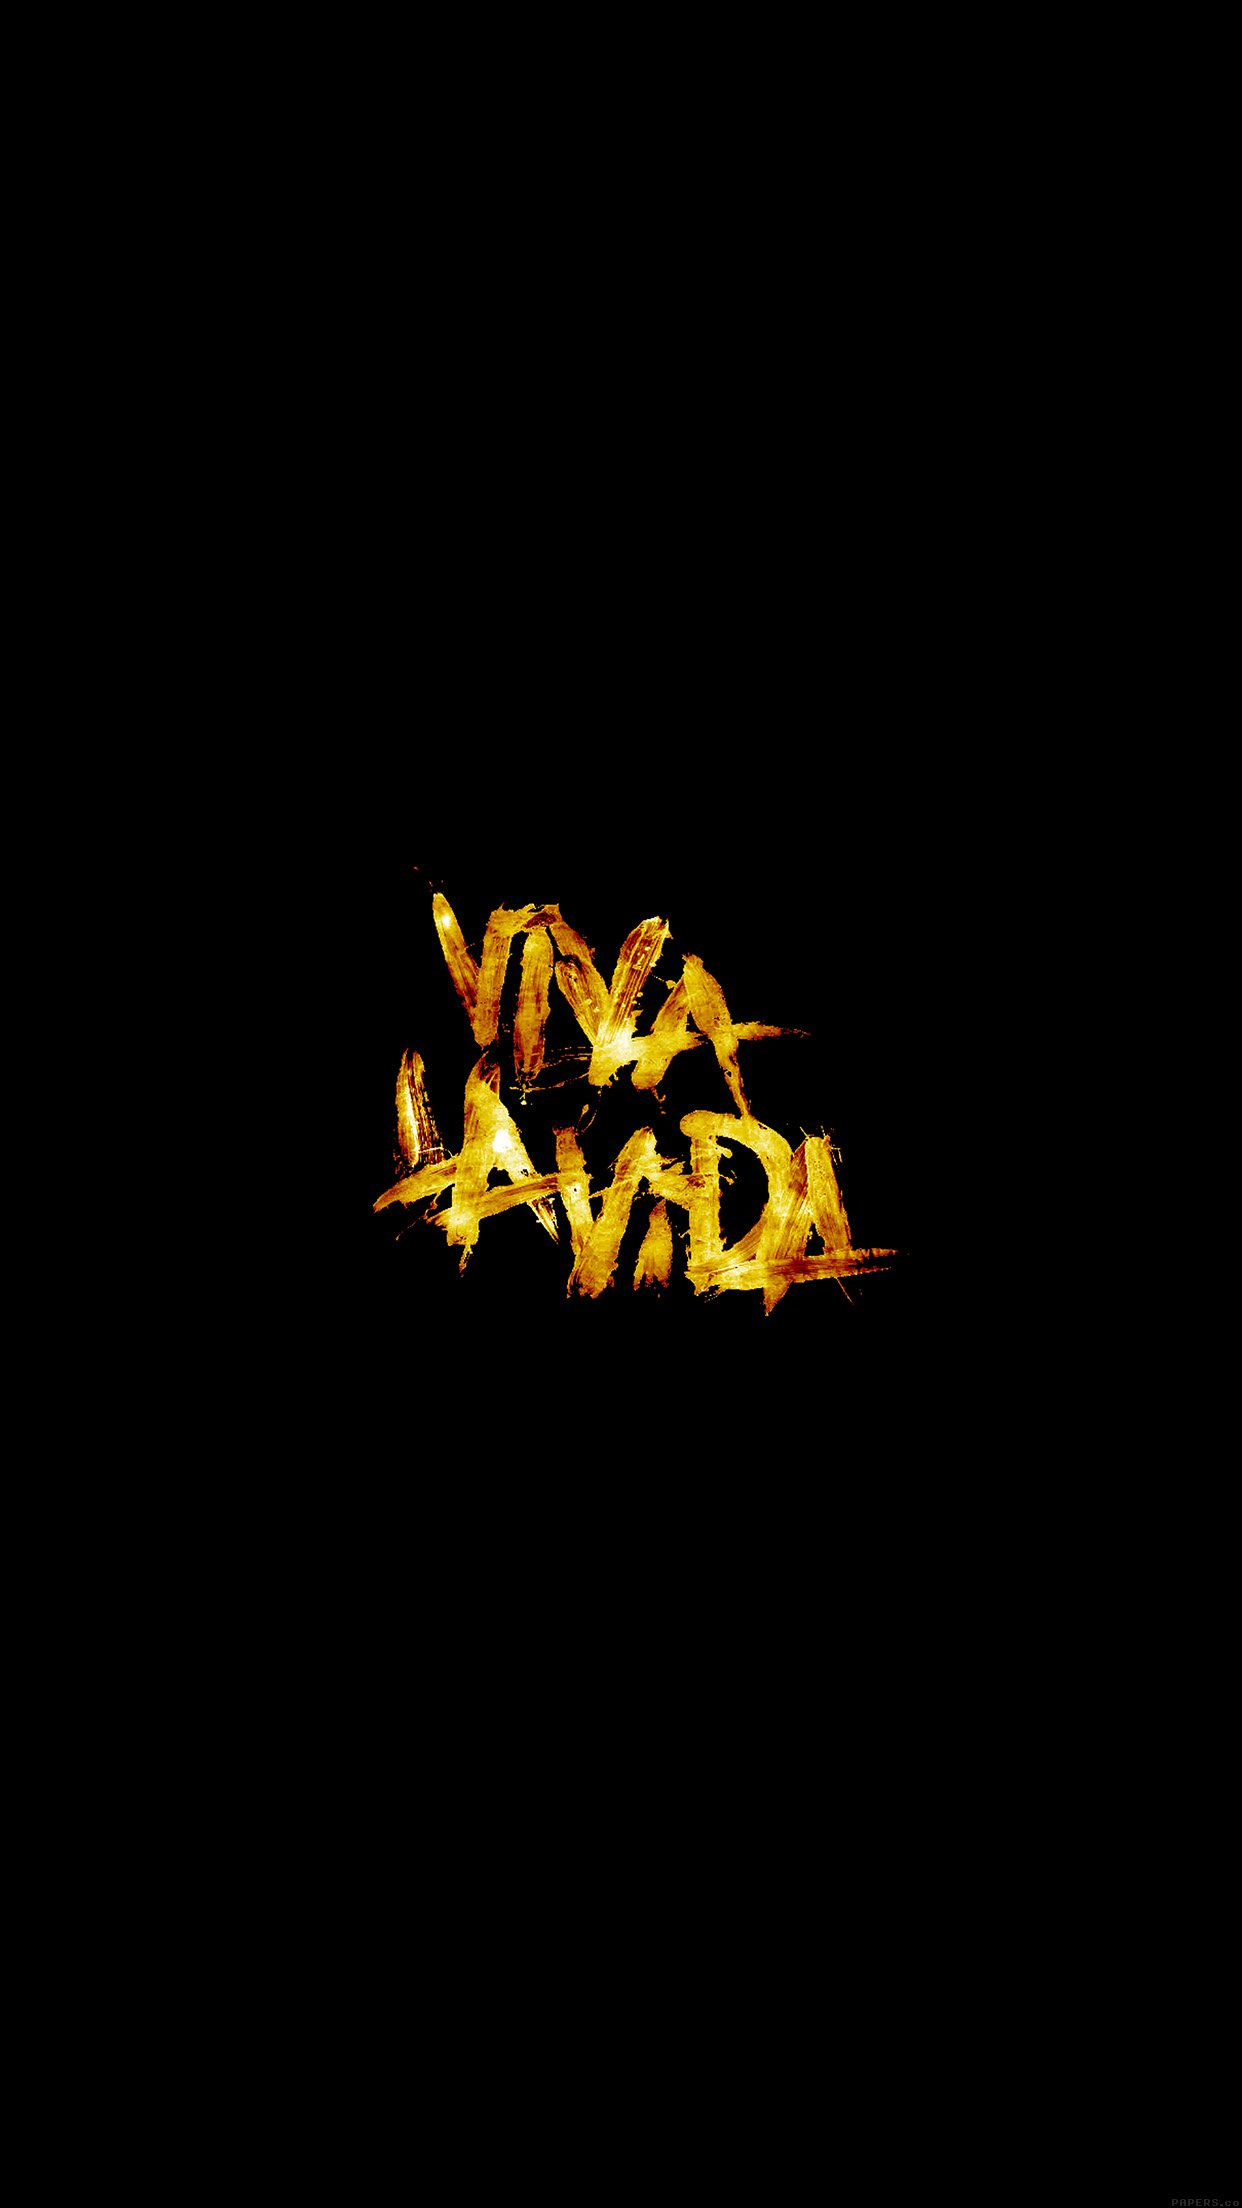 Viva La Vida Logo Music Art Android wallpaper